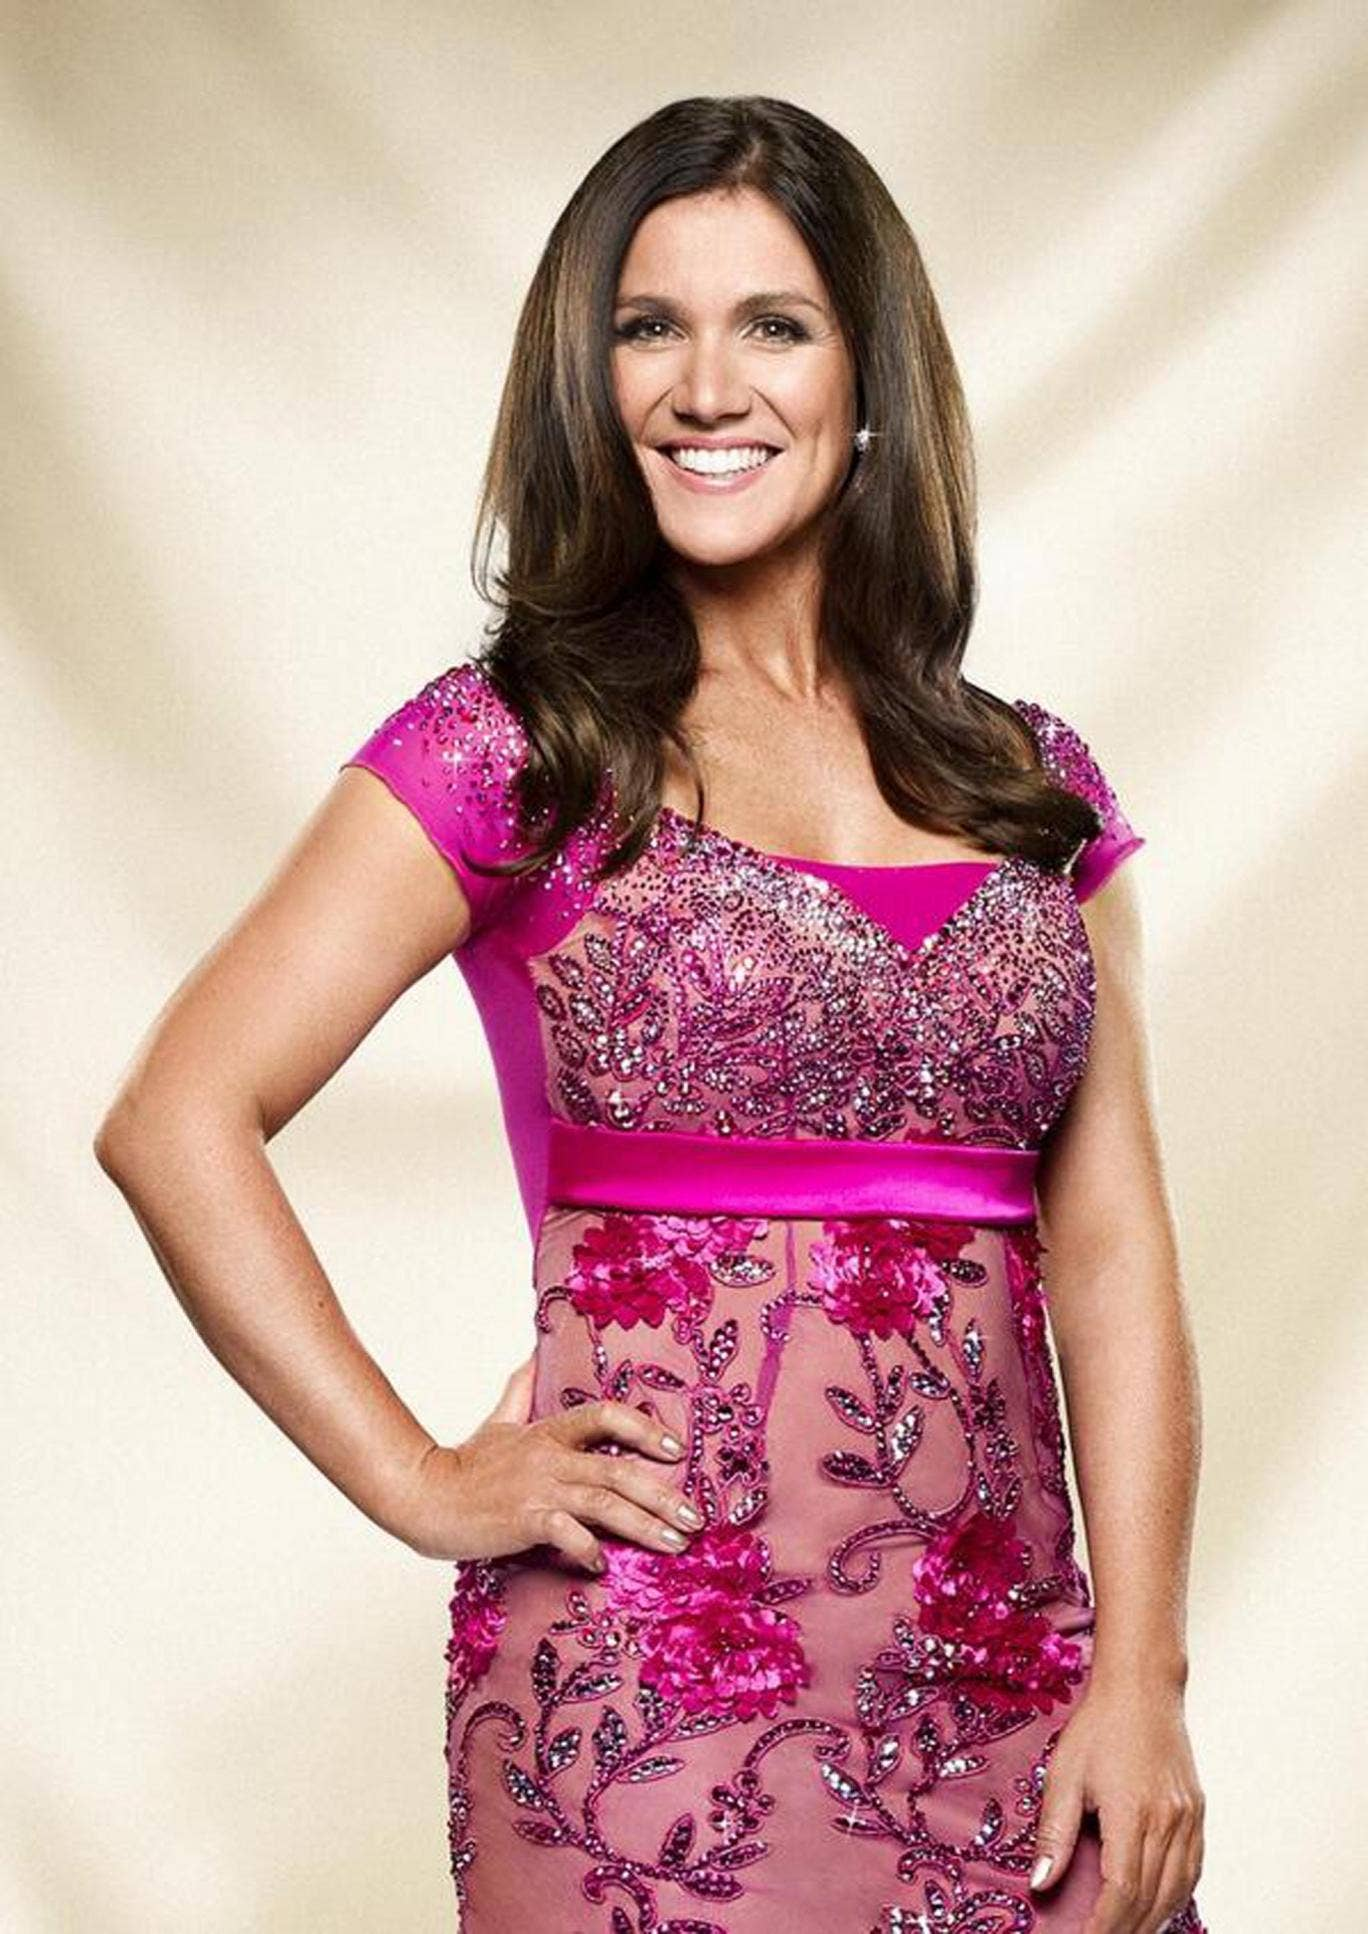 Susanna Reid posted this picture on Twitter to confirm she is appearing on Strictly Come Dancing 2013